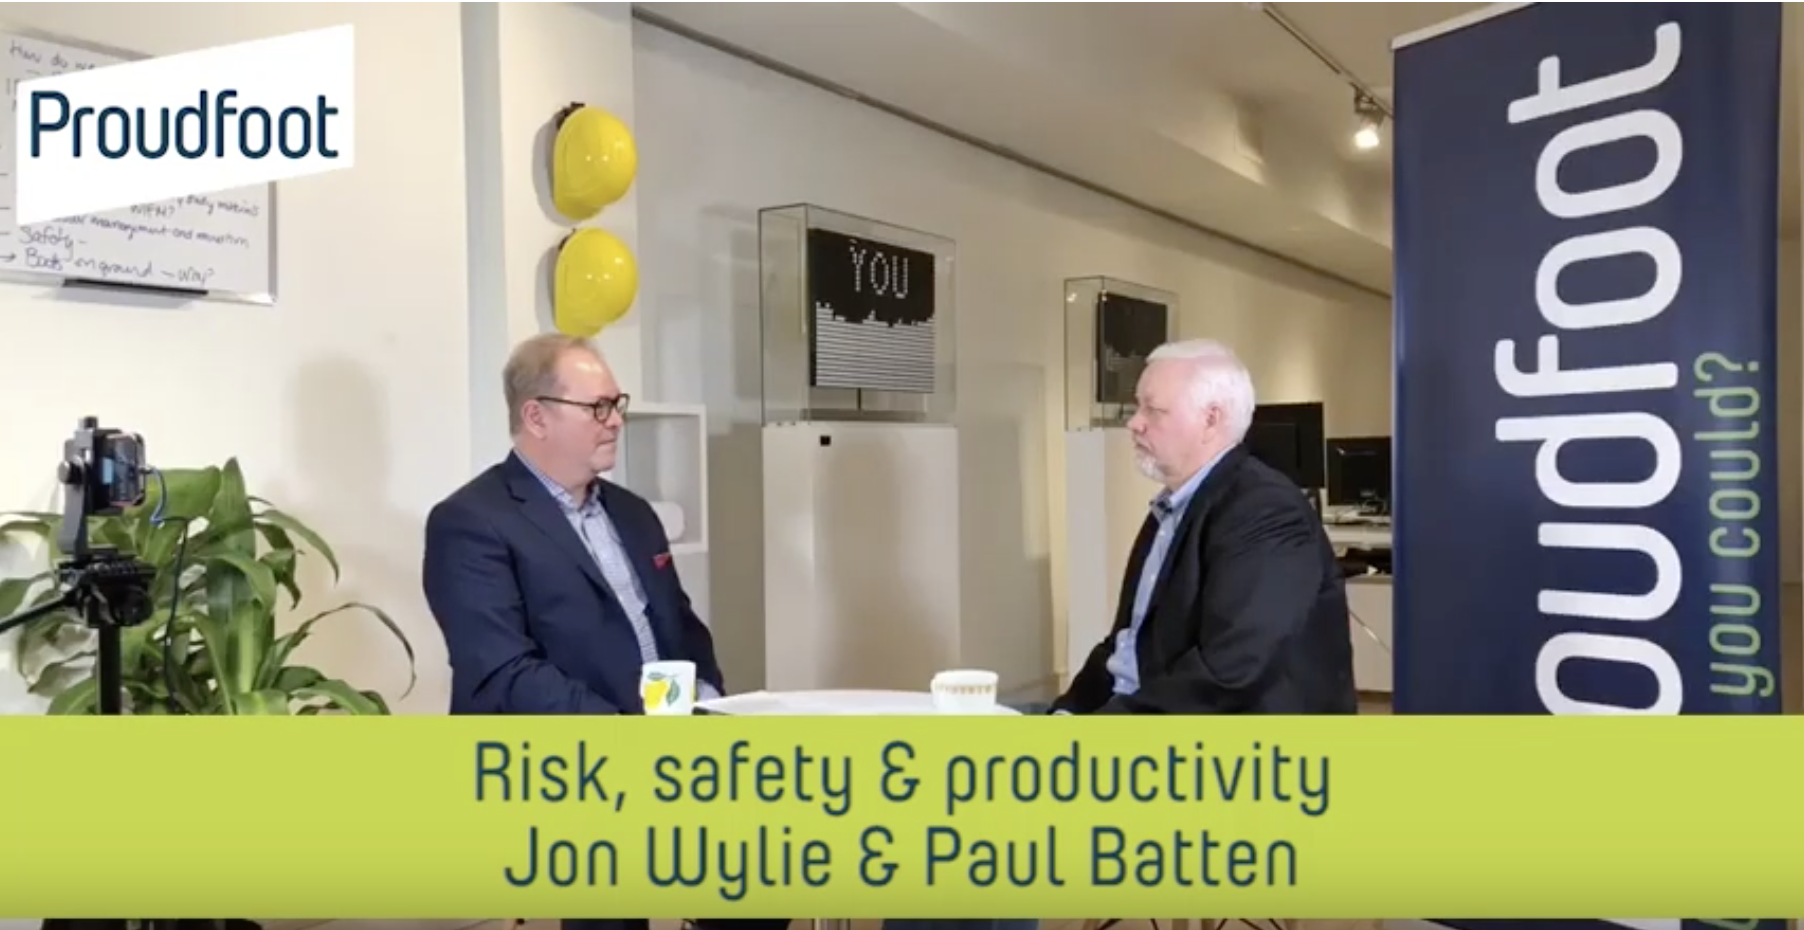 Proudfoot Risk, Safety & Productivity